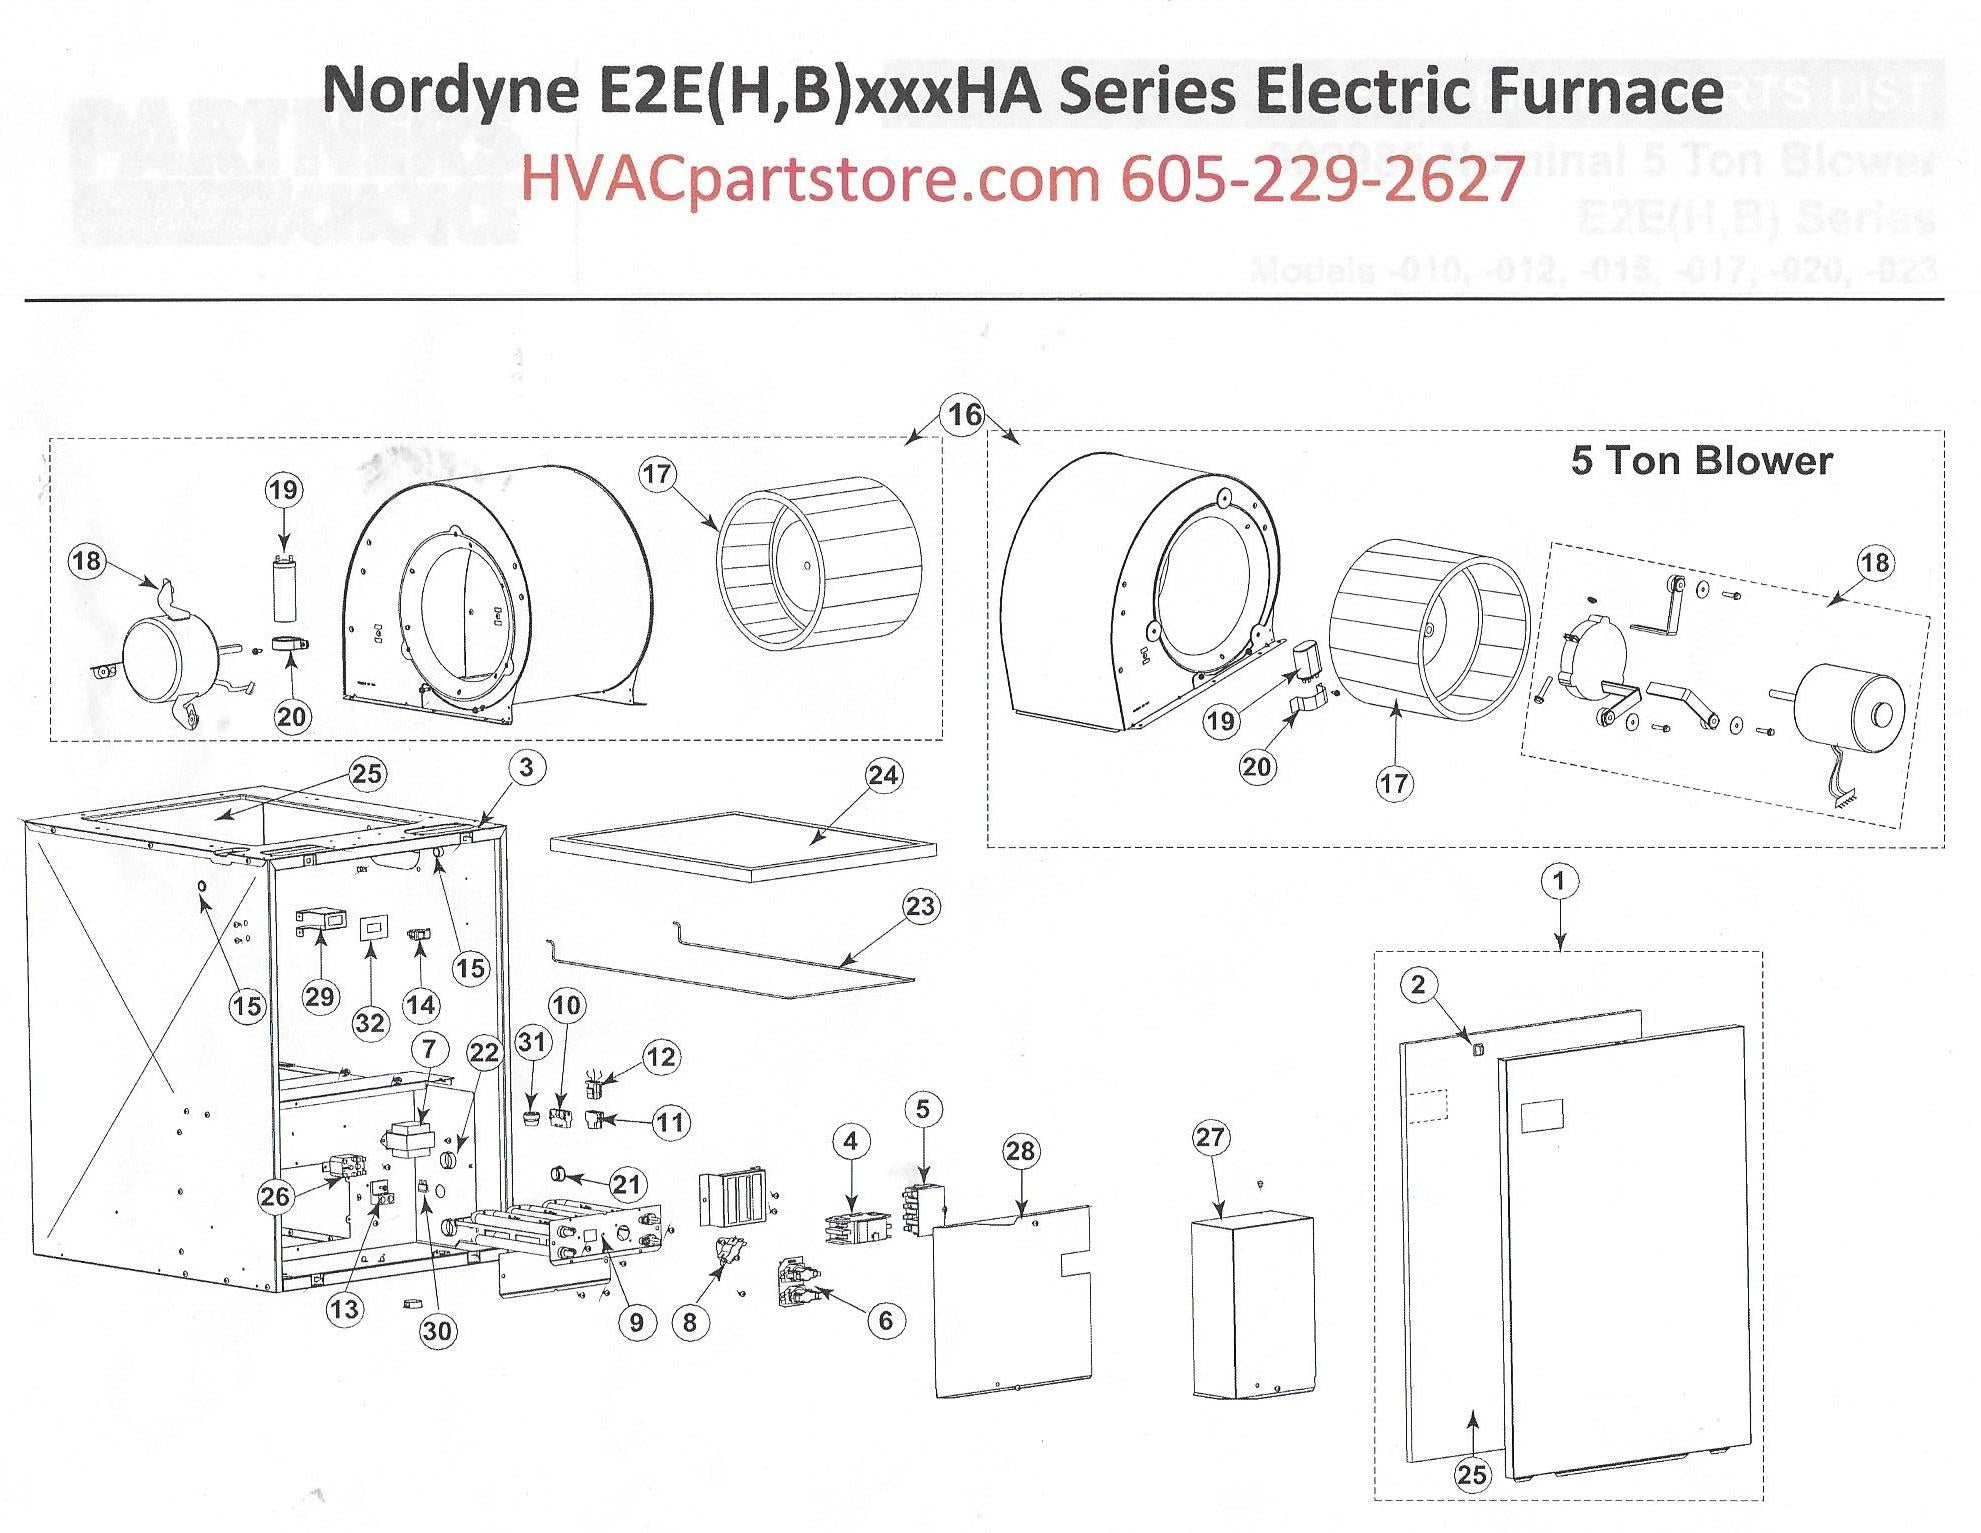 E2eb020ha Nordyne Electric Furnace Parts  U2013 Hvacpartstore